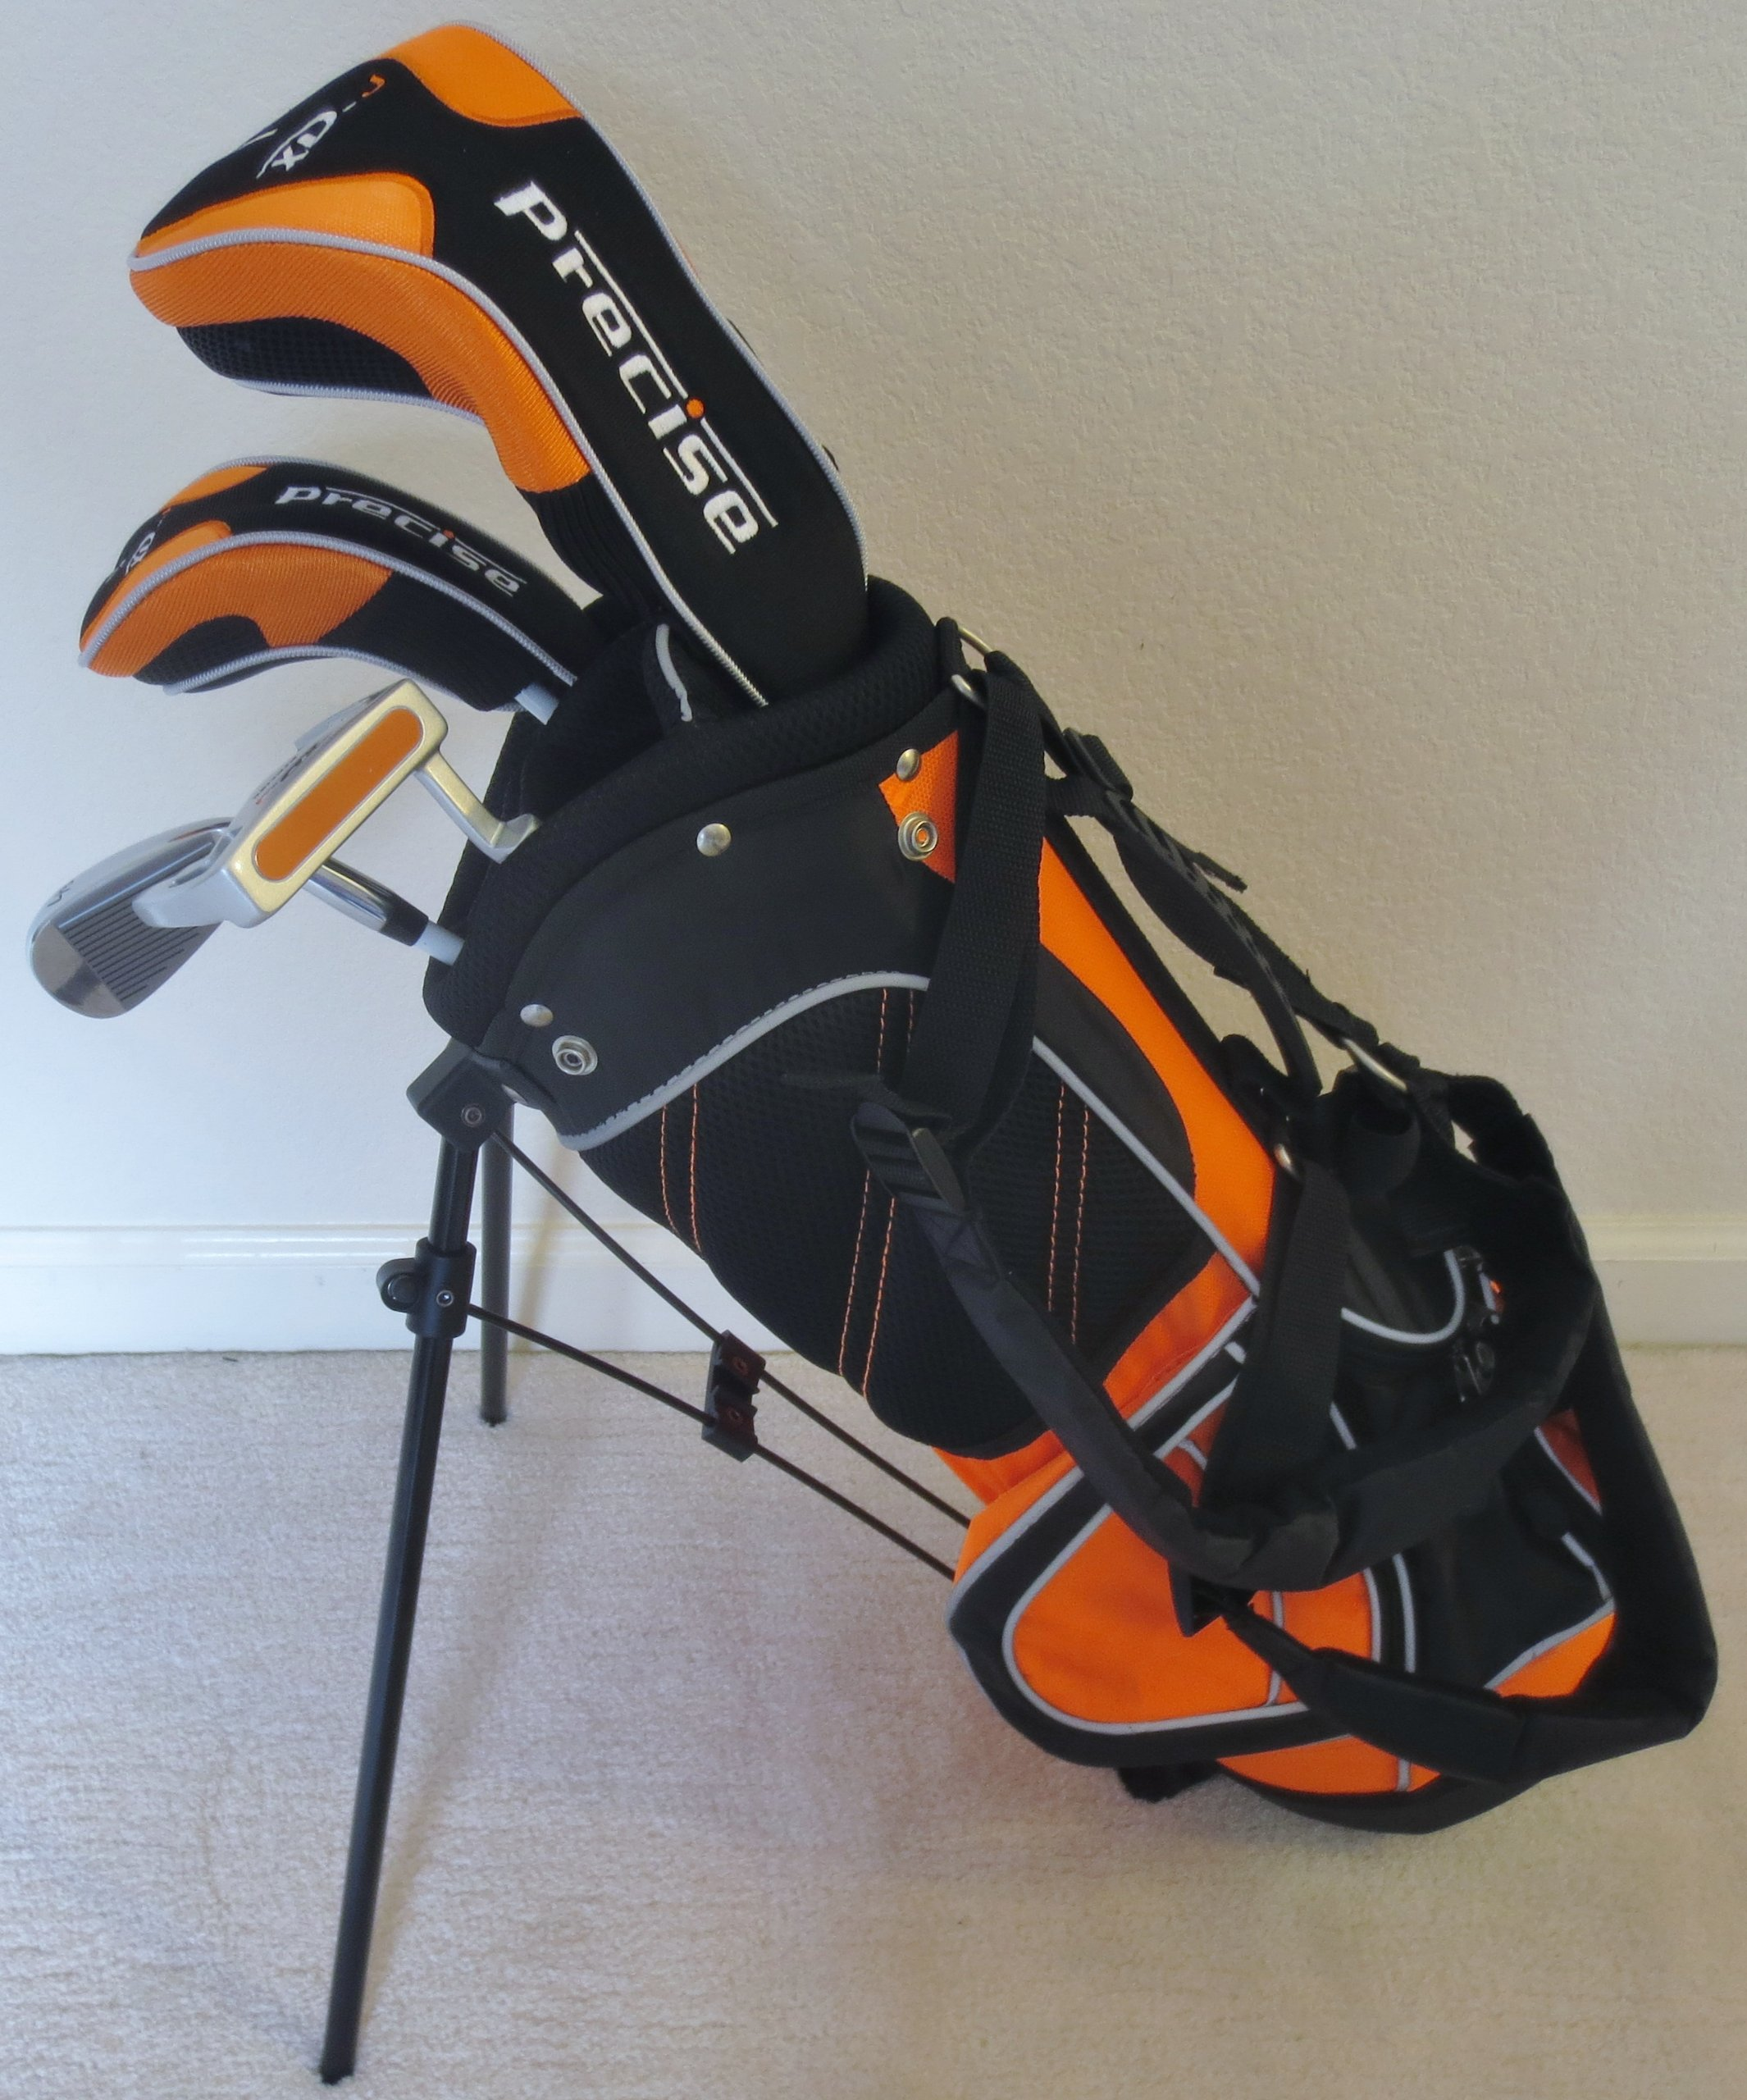 Left Handed Boys Junior Golf Club Set with Stand Bag for Kids Ages 3-6 Orange Color Premium Professional Quality by PG Golf Equipment (Image #1)